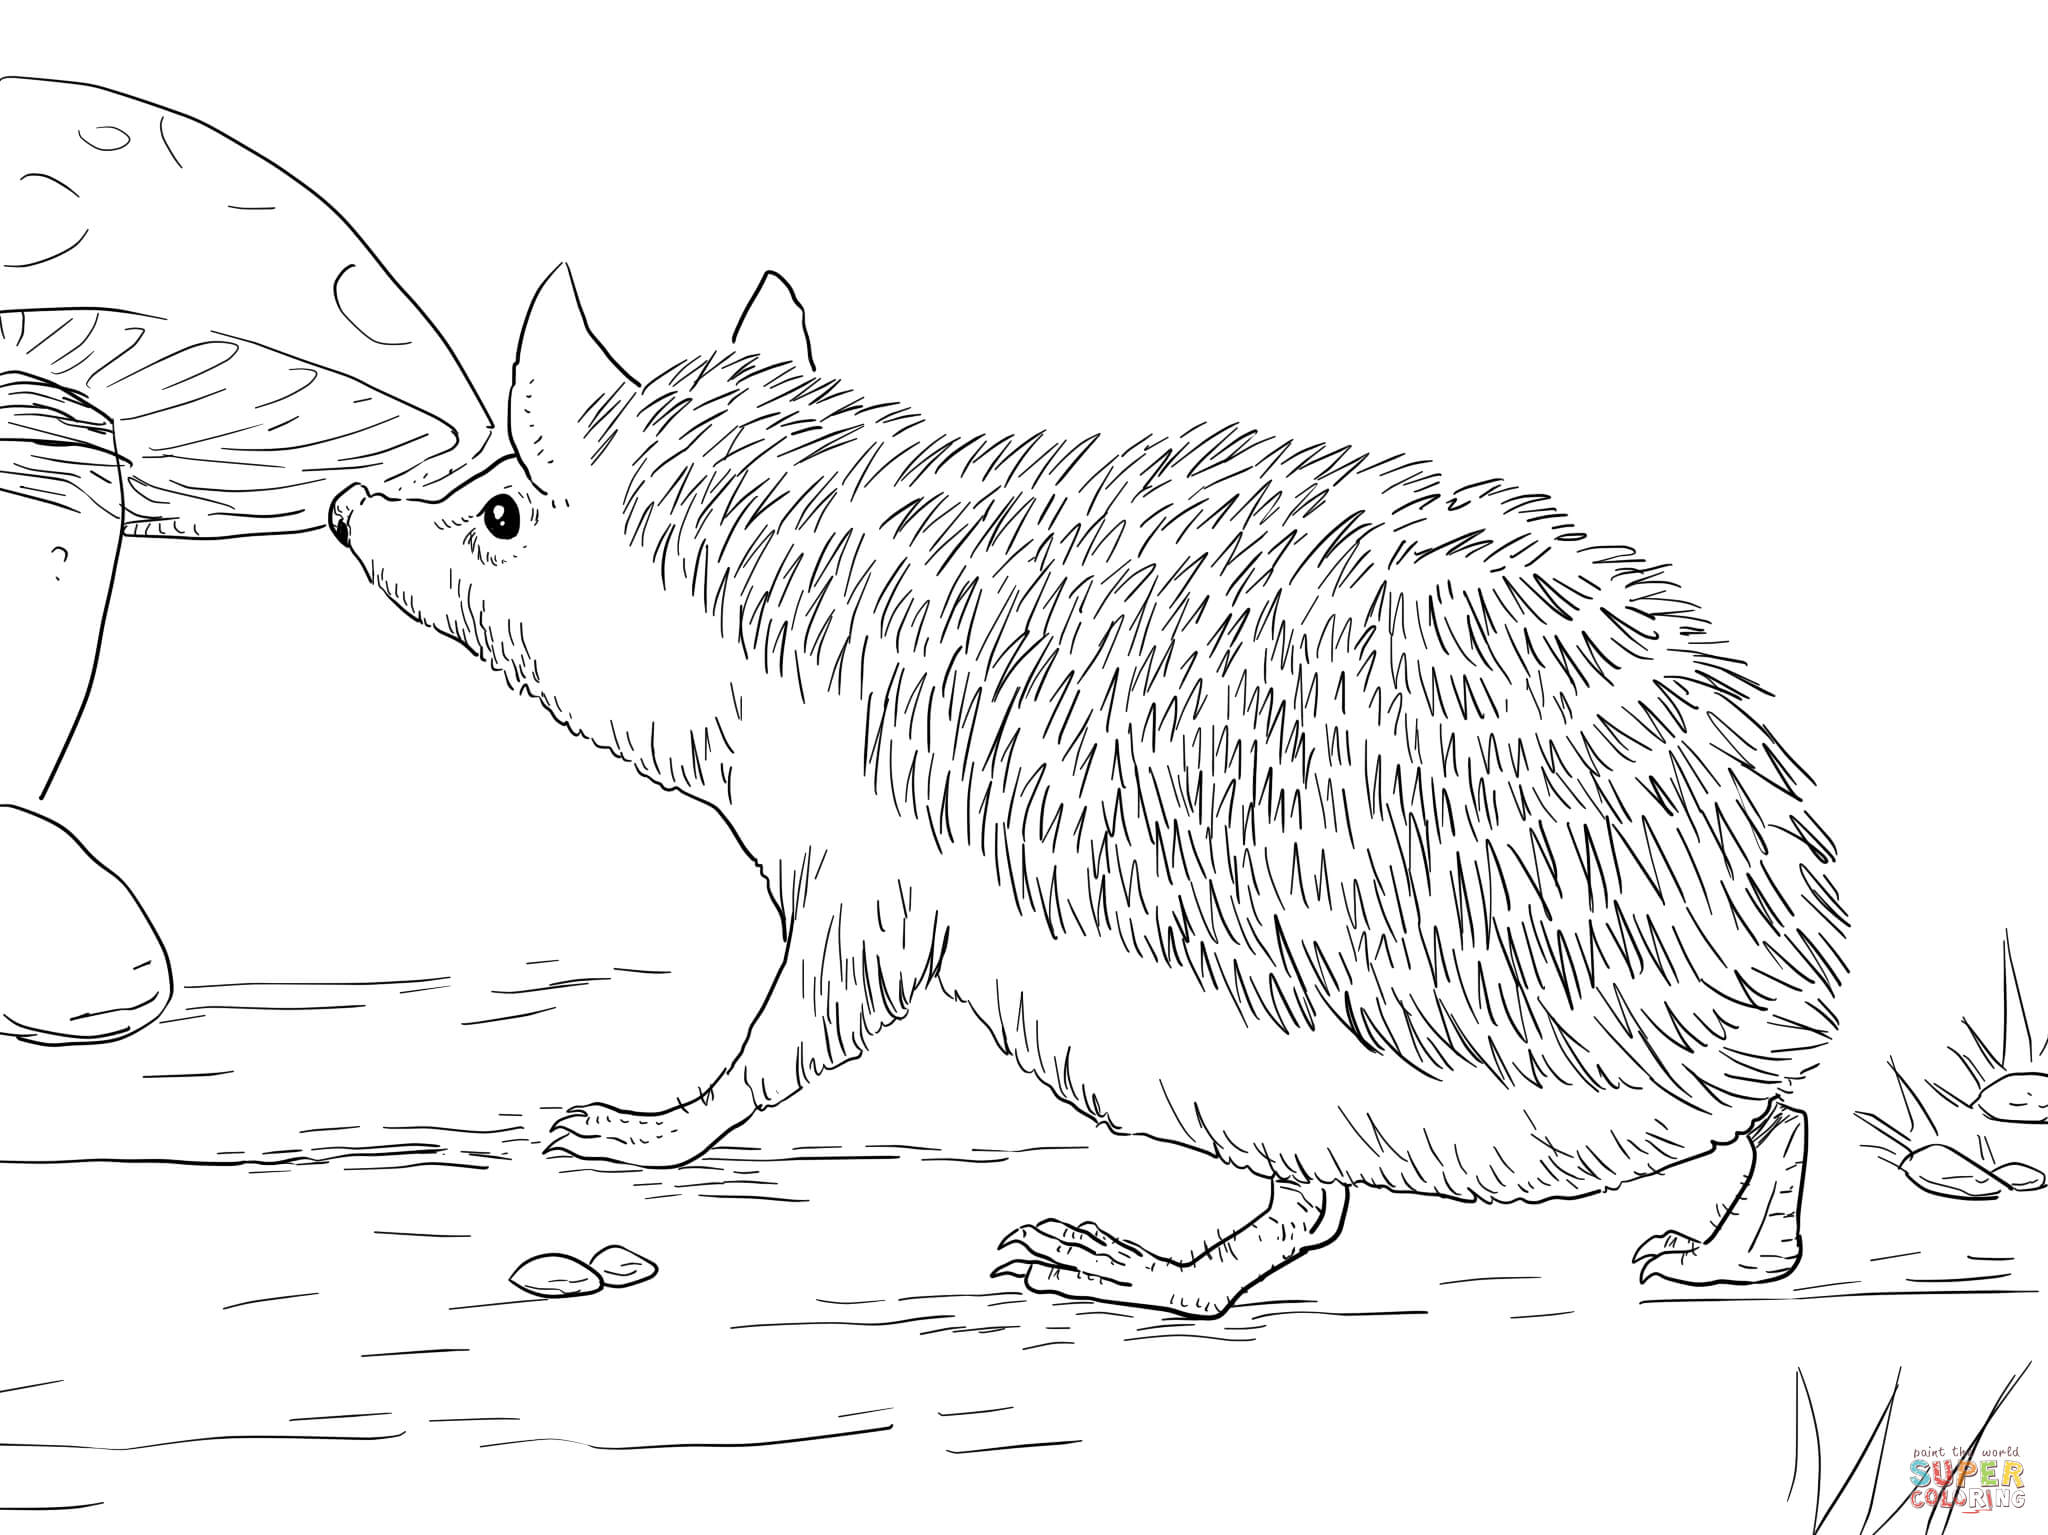 hedgehog colouring sheet hedgehog coloring pages to download and print for free colouring sheet hedgehog